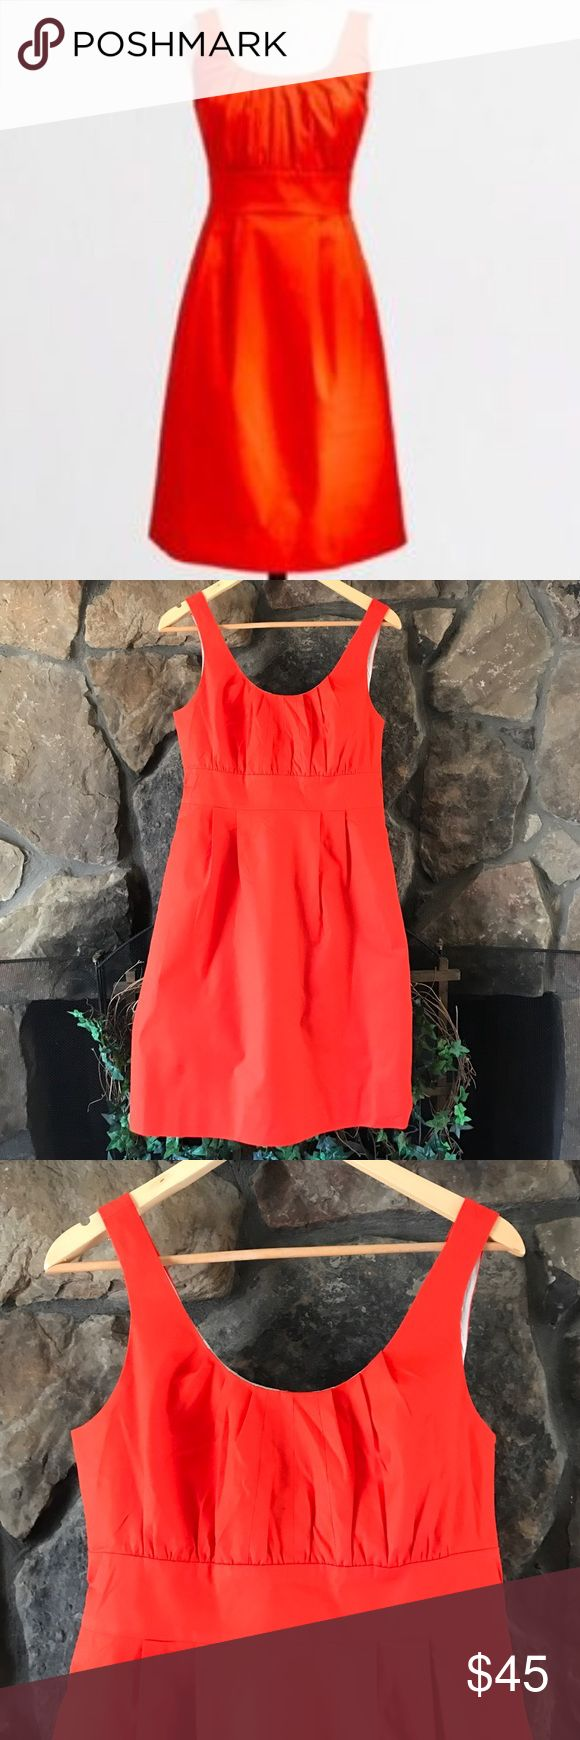 🎭 NWT J CREW ORANGE SUITING DRESS🎭 New with tag J crew suiting dress in reddish orange. Back zipping gathered bodice for shape definition with a band at the waist pleating. Fully lined. From J Crew Factory J. Crew Dresses Midi